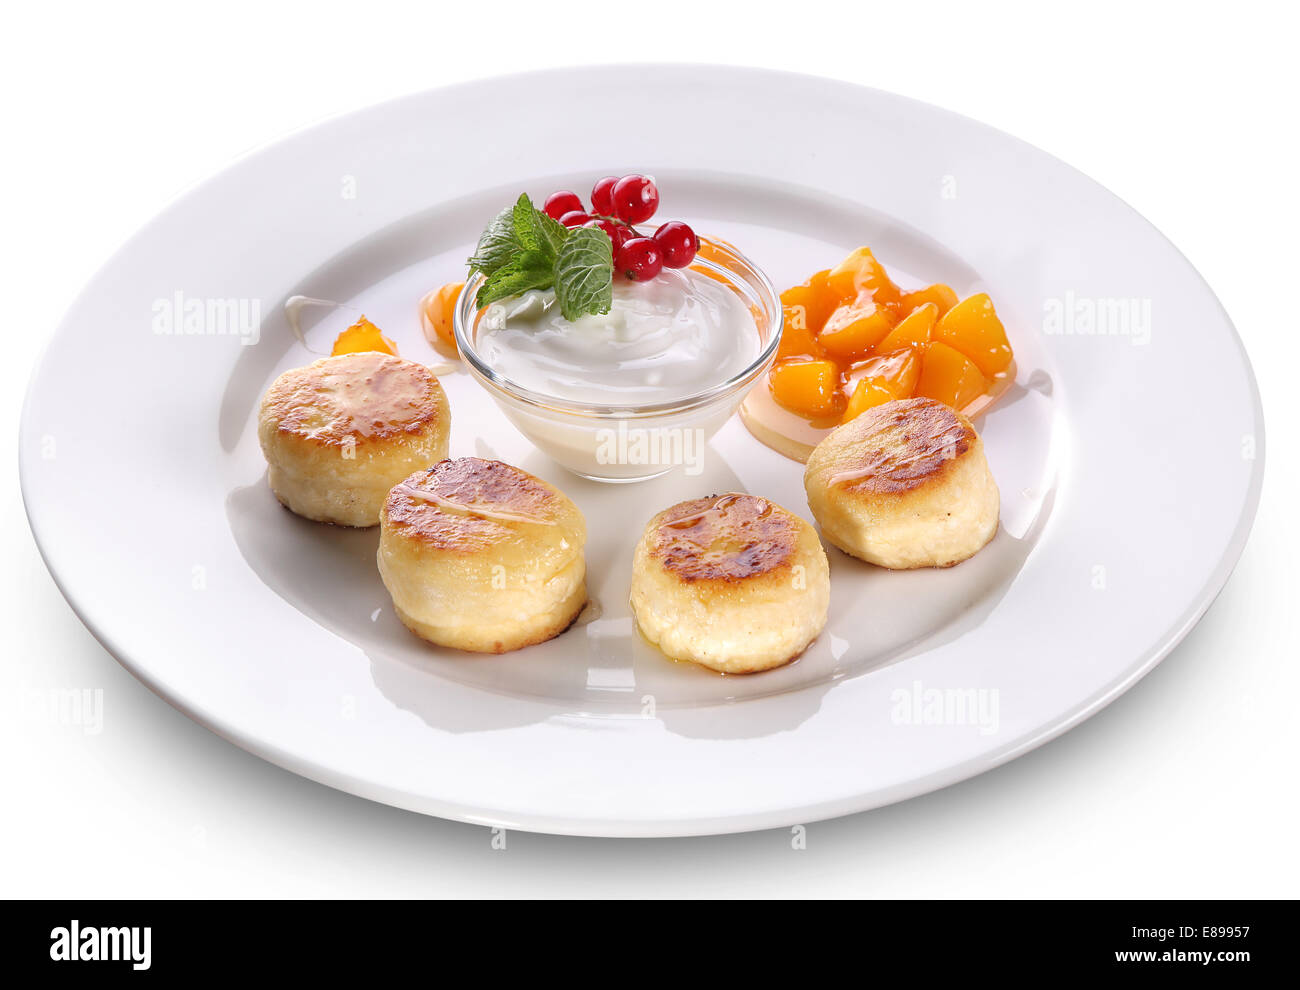 Cheese cakes on a white plate. File contains clipping paths. - Stock Image